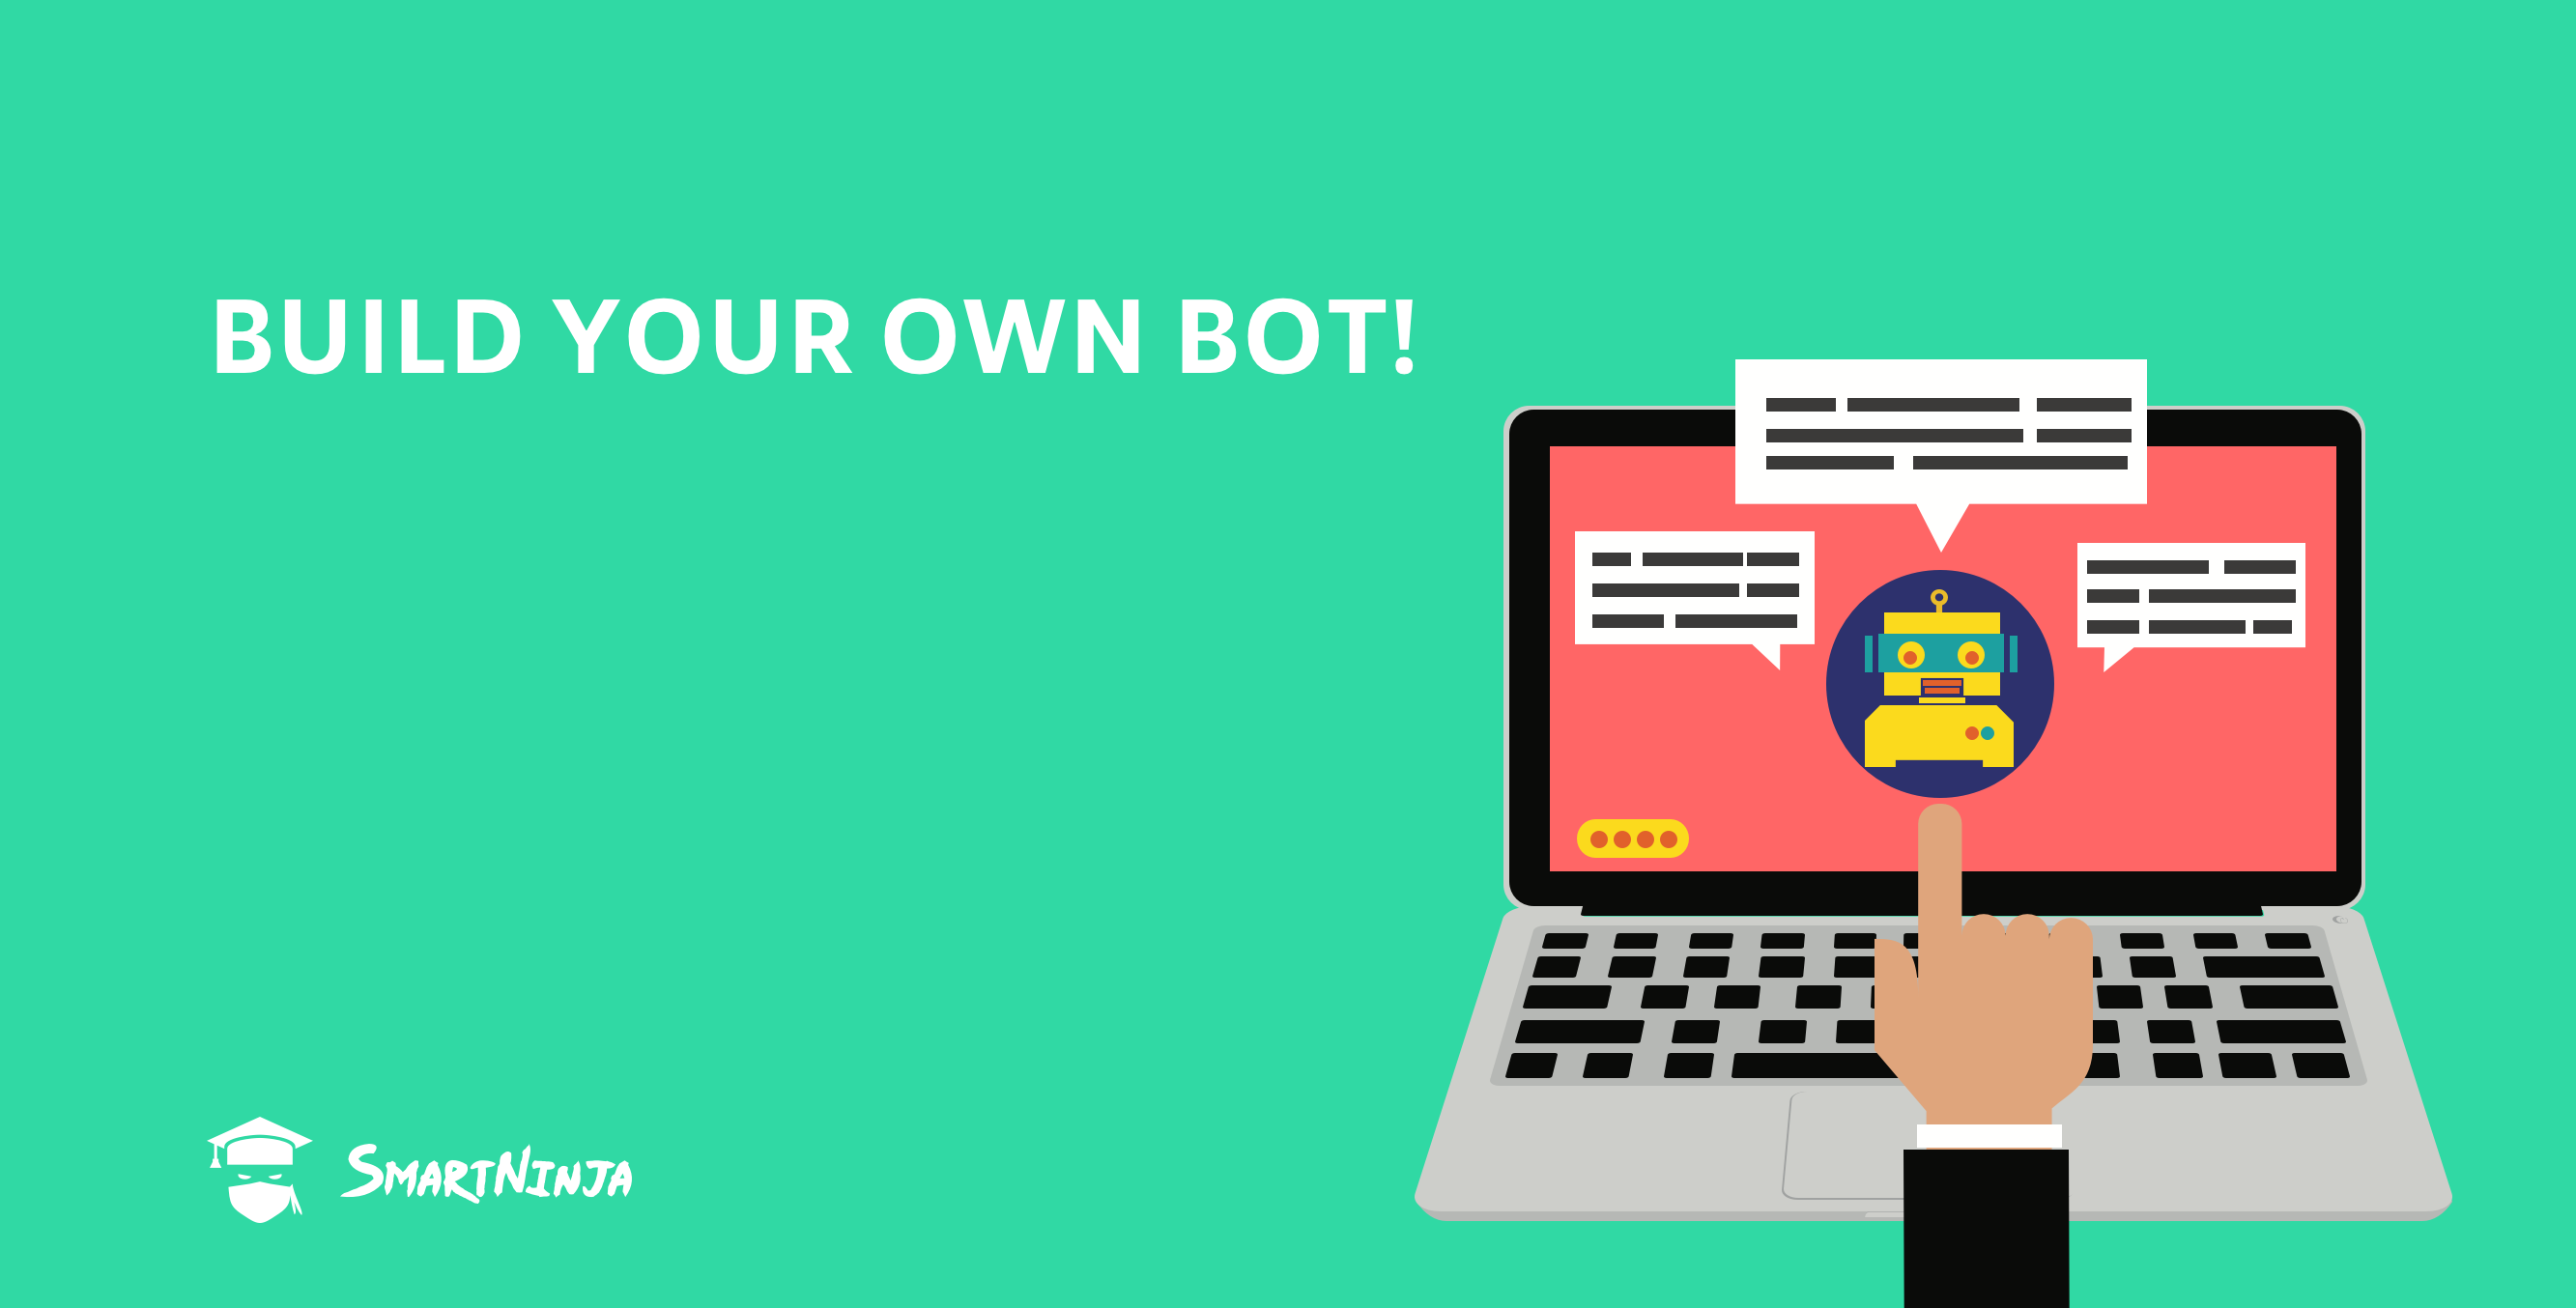 Build your own bot!